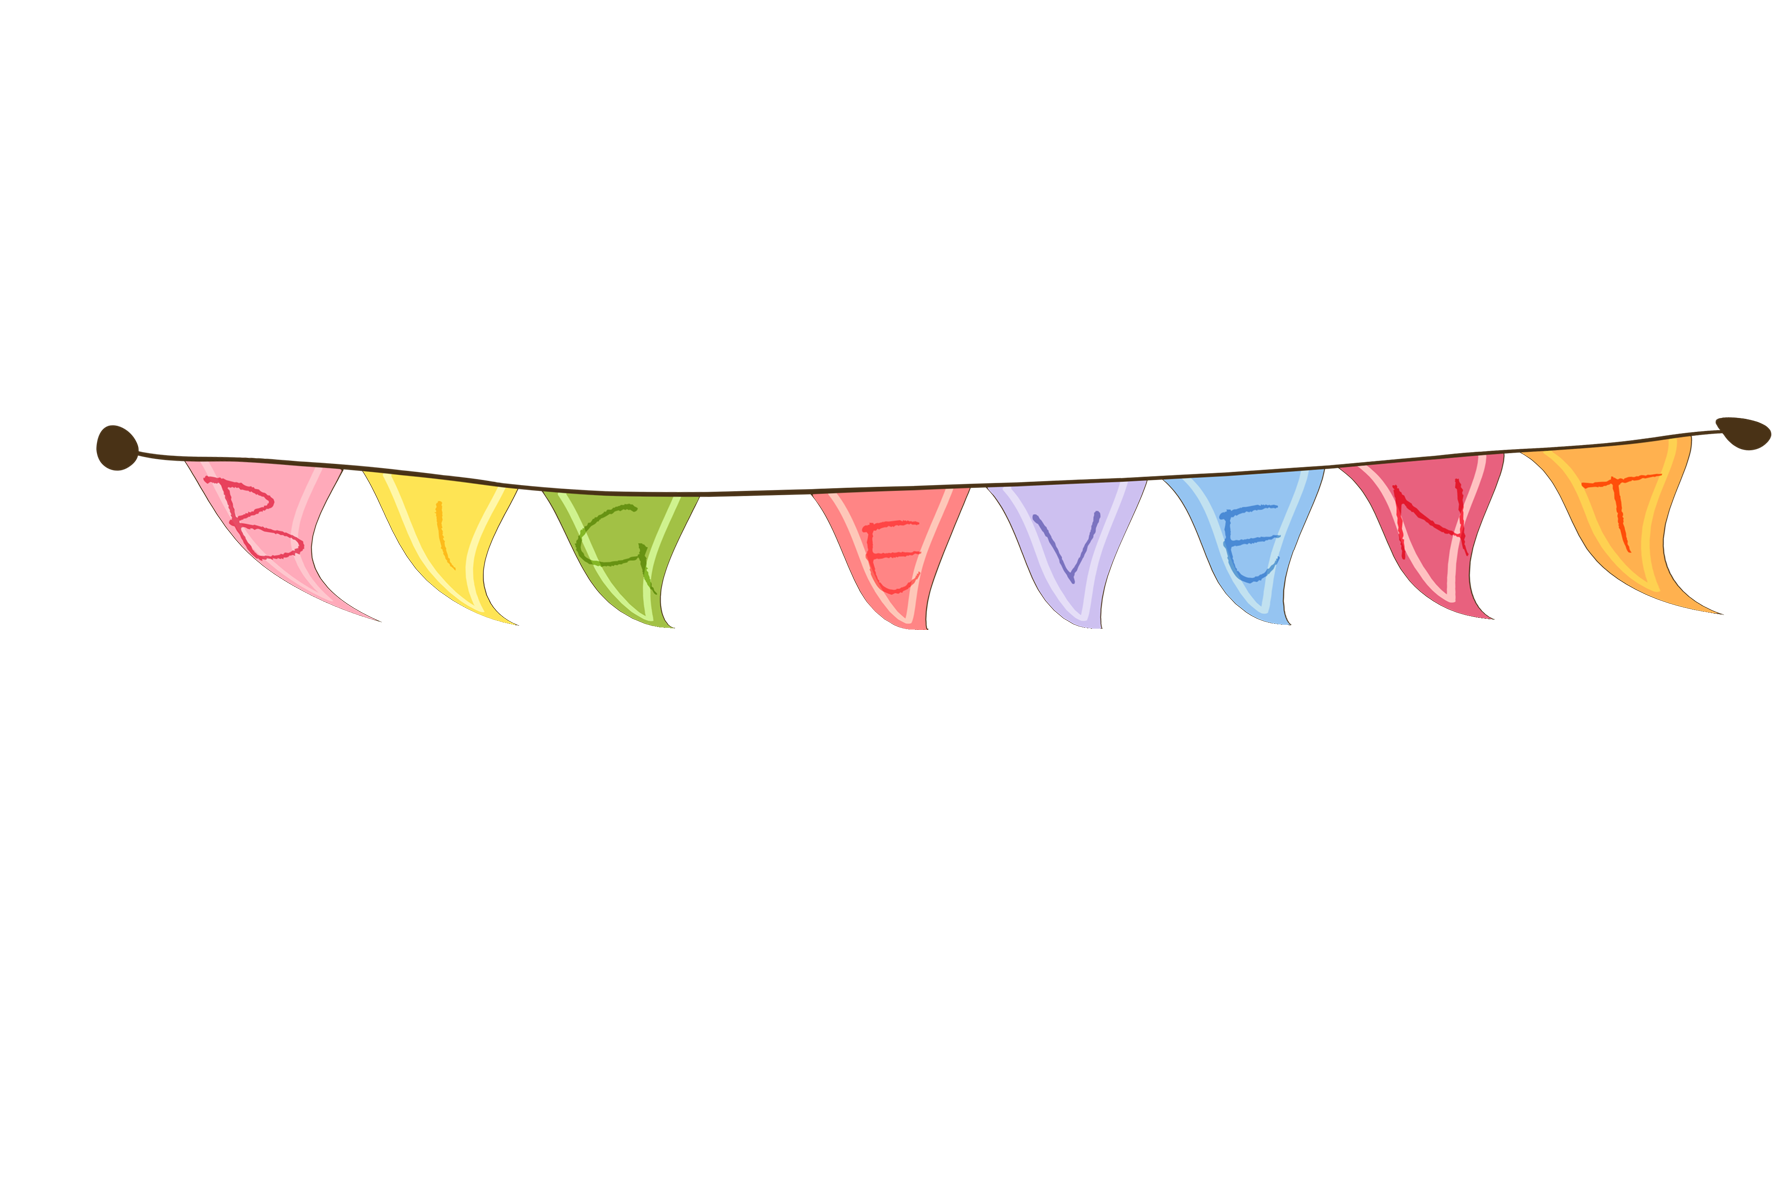 Triangular clipart festival banner. Flag poster small colored